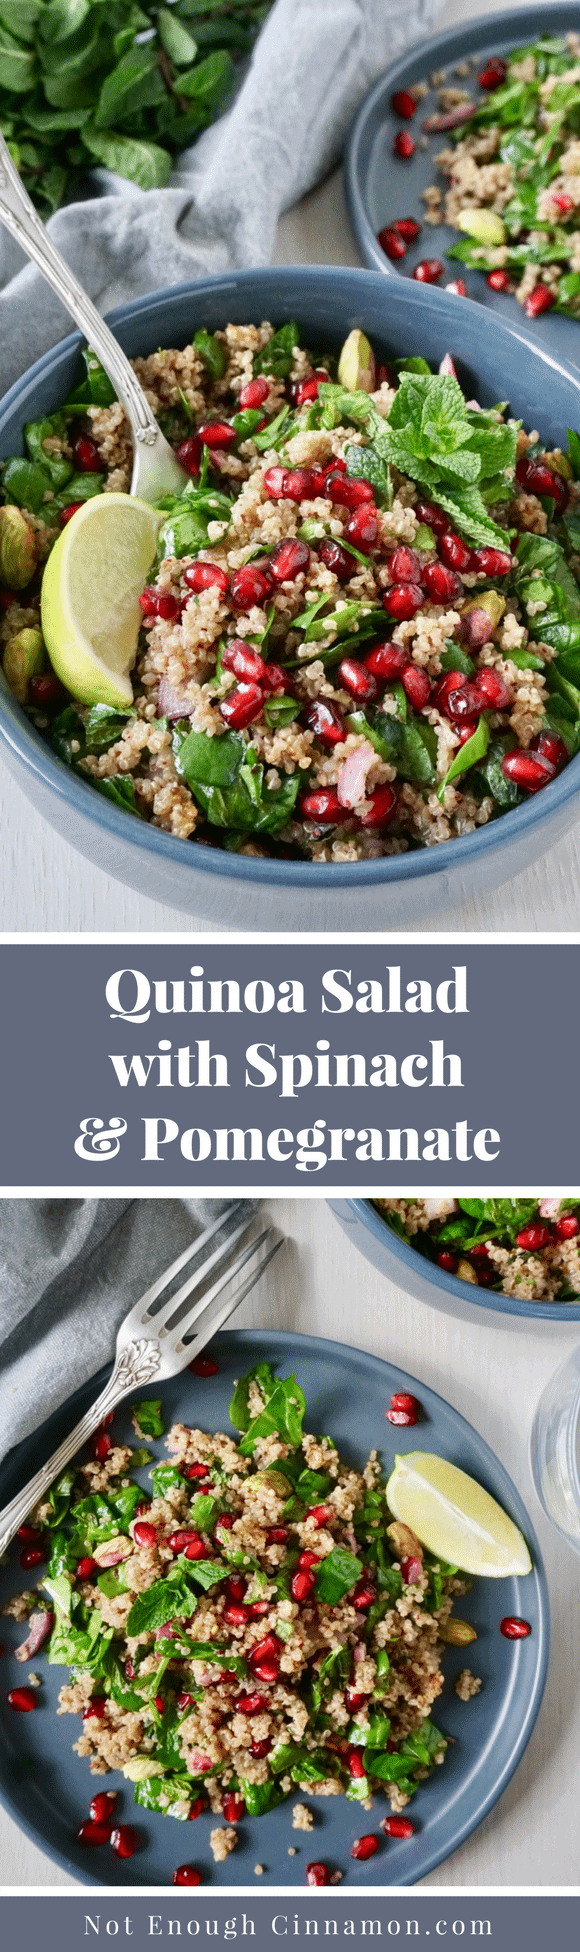 Quinoa Salad with Spinach and Pomegranate | A beautiful vegan quinoa salad inspired by Middle-Eastern and Persian cuisine with pomegranate arils, fresh mint, and pistachios. Eat this healthy and filling vegan salad either as a main or a side dish.#cleaneating, #vegansaladrecipes, #quinoasalad, #healthysaladrecipes